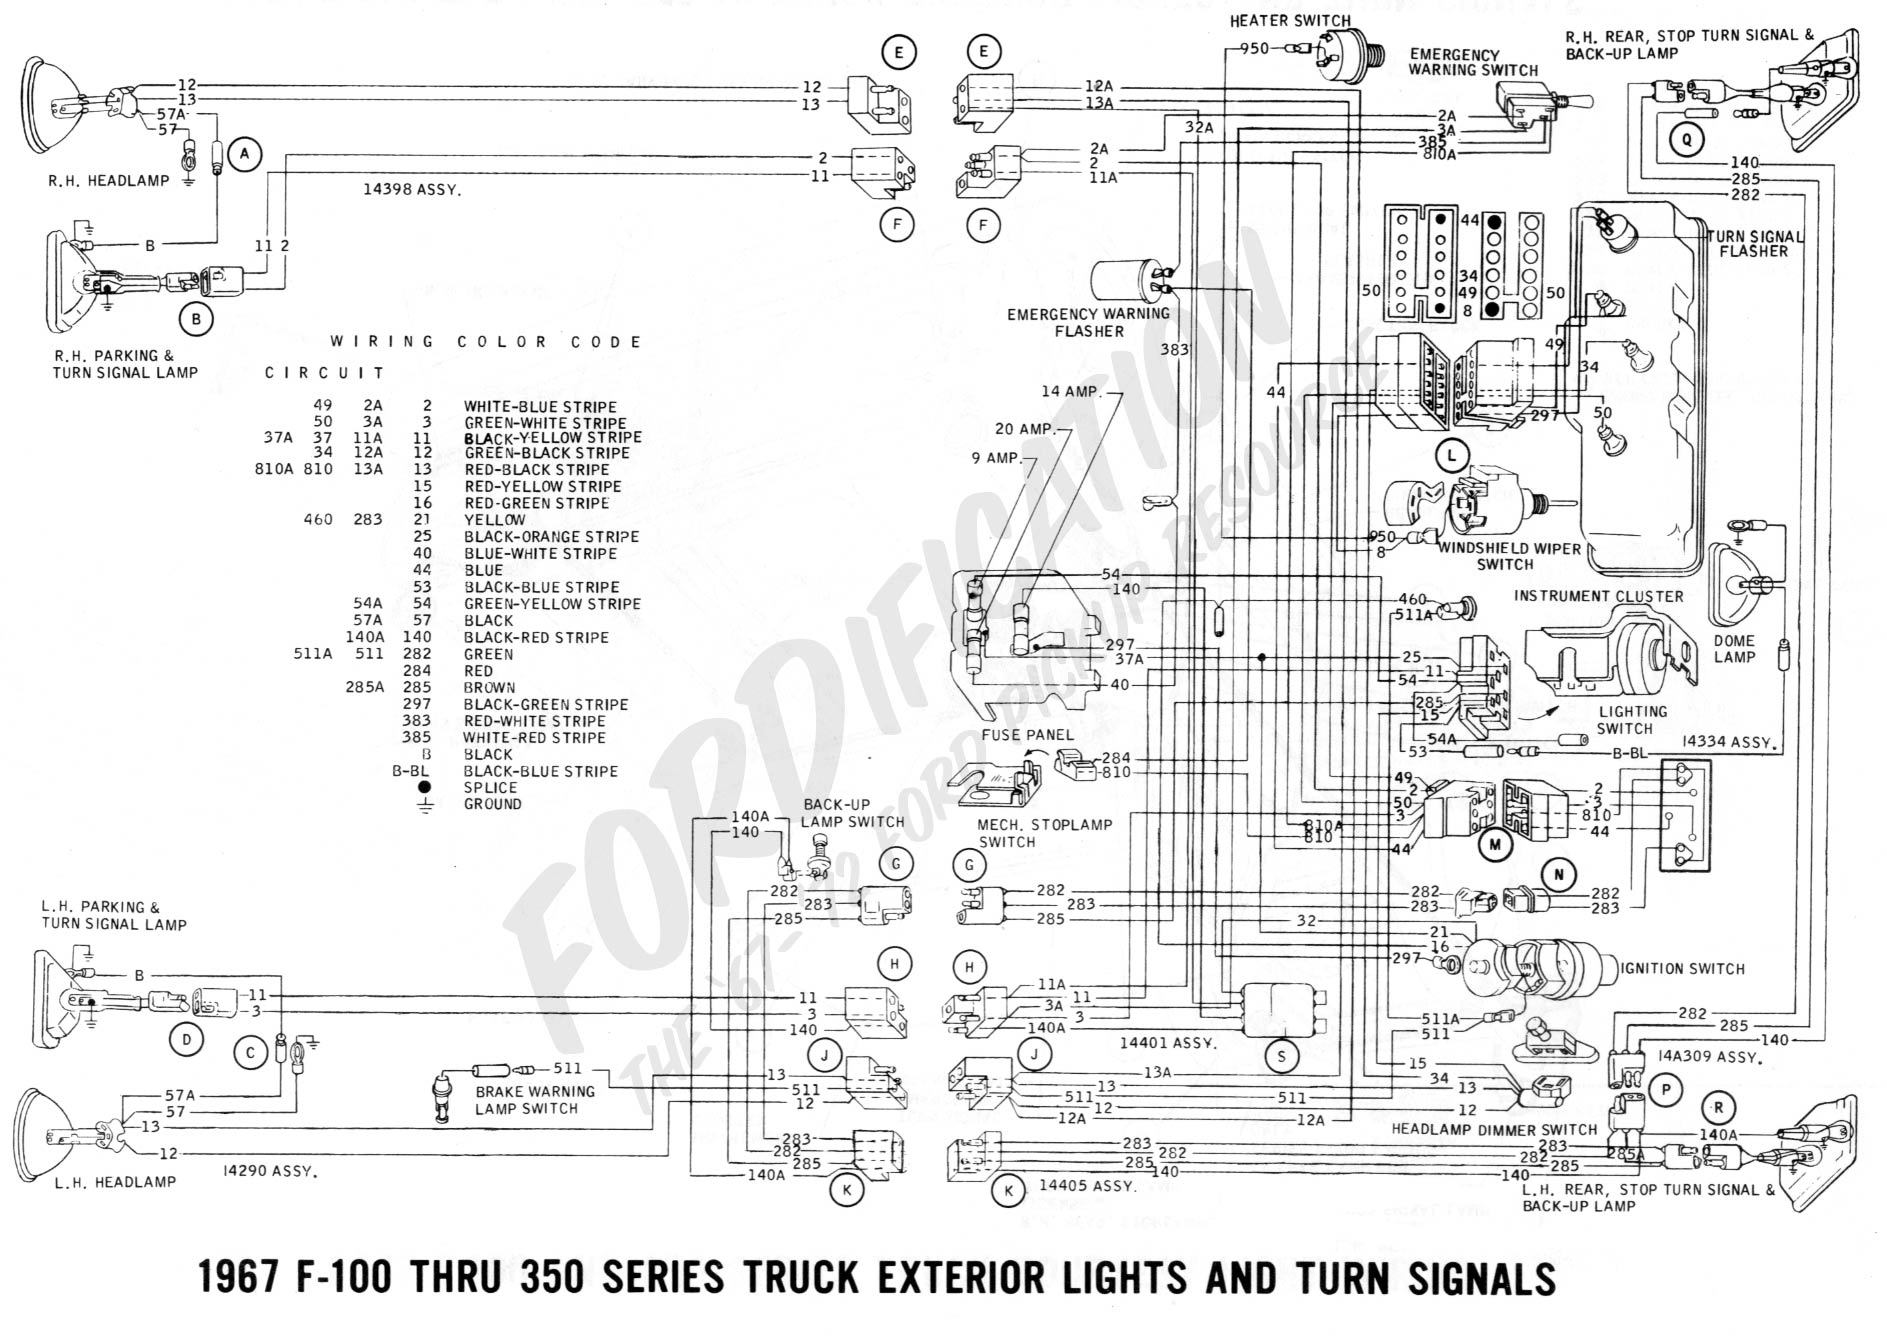 80 1967_exterior_lights_and_turn_signals_page_2_1db6c529c4c9567560e56d6320f993290ba5b803 66 mustang wiring diagram 1966 mustang dash wiring diagram 1966 ford truck wiring diagram at crackthecode.co